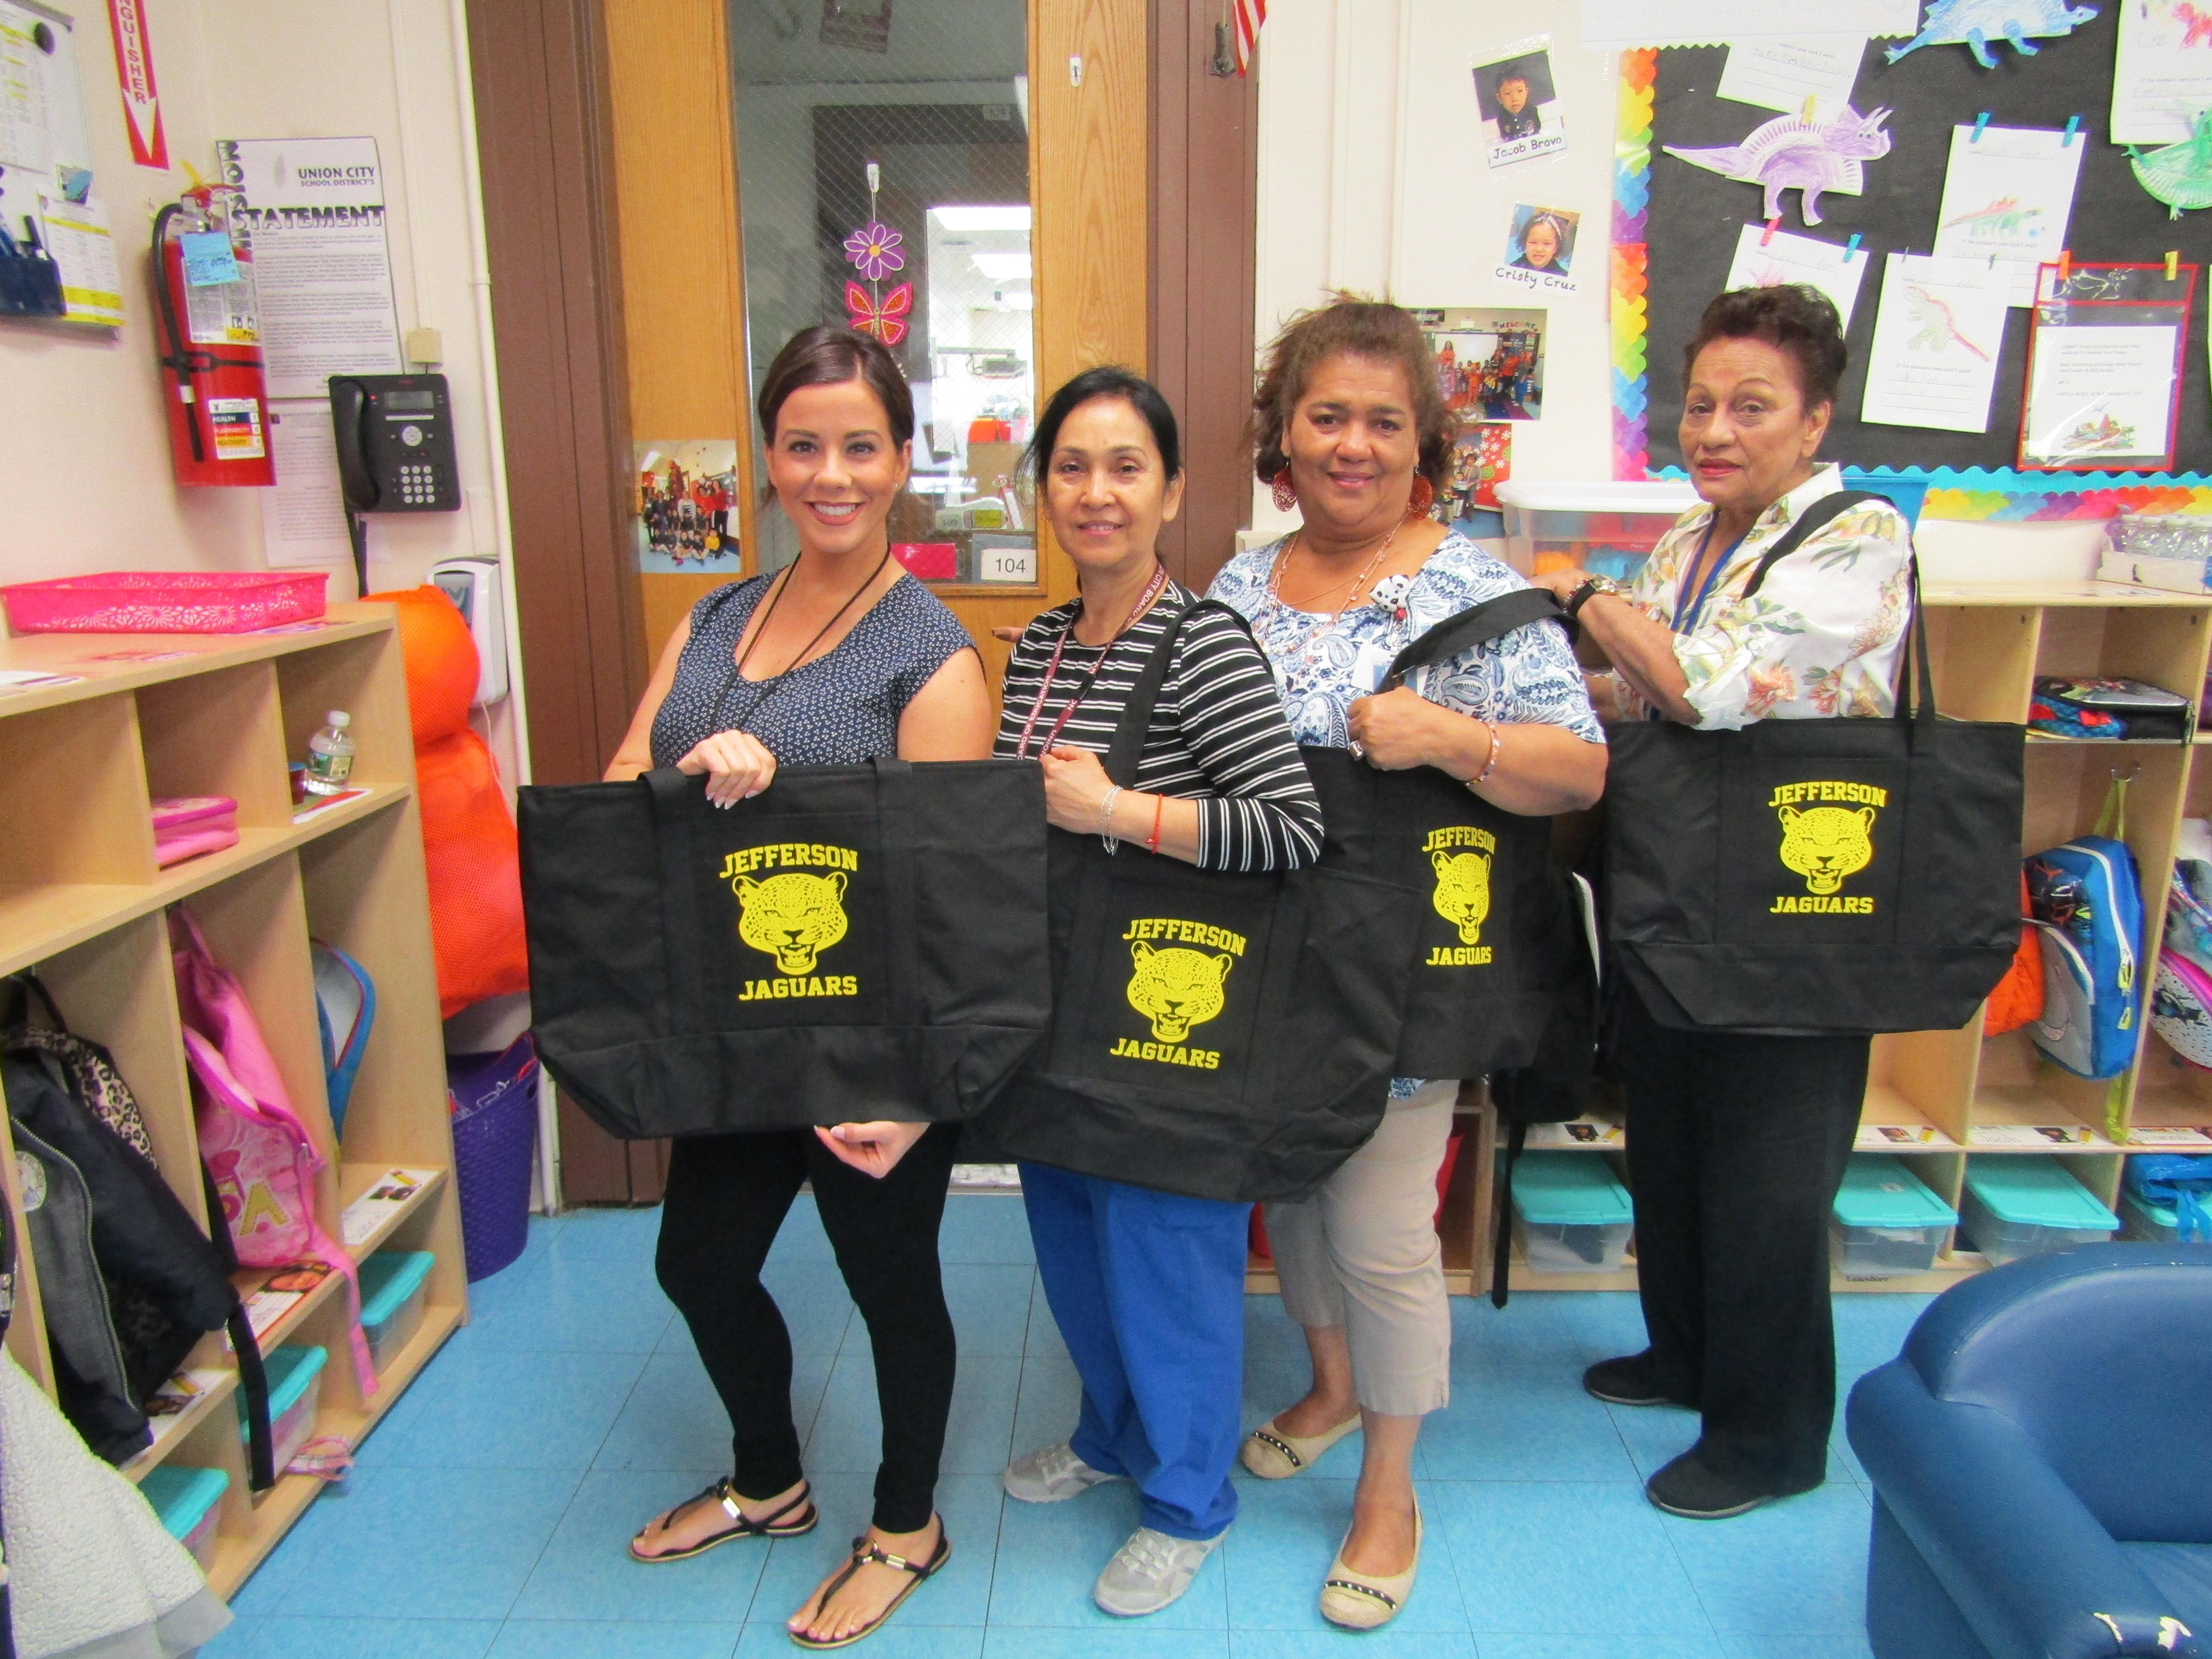 group 2 of teachers holding their bags